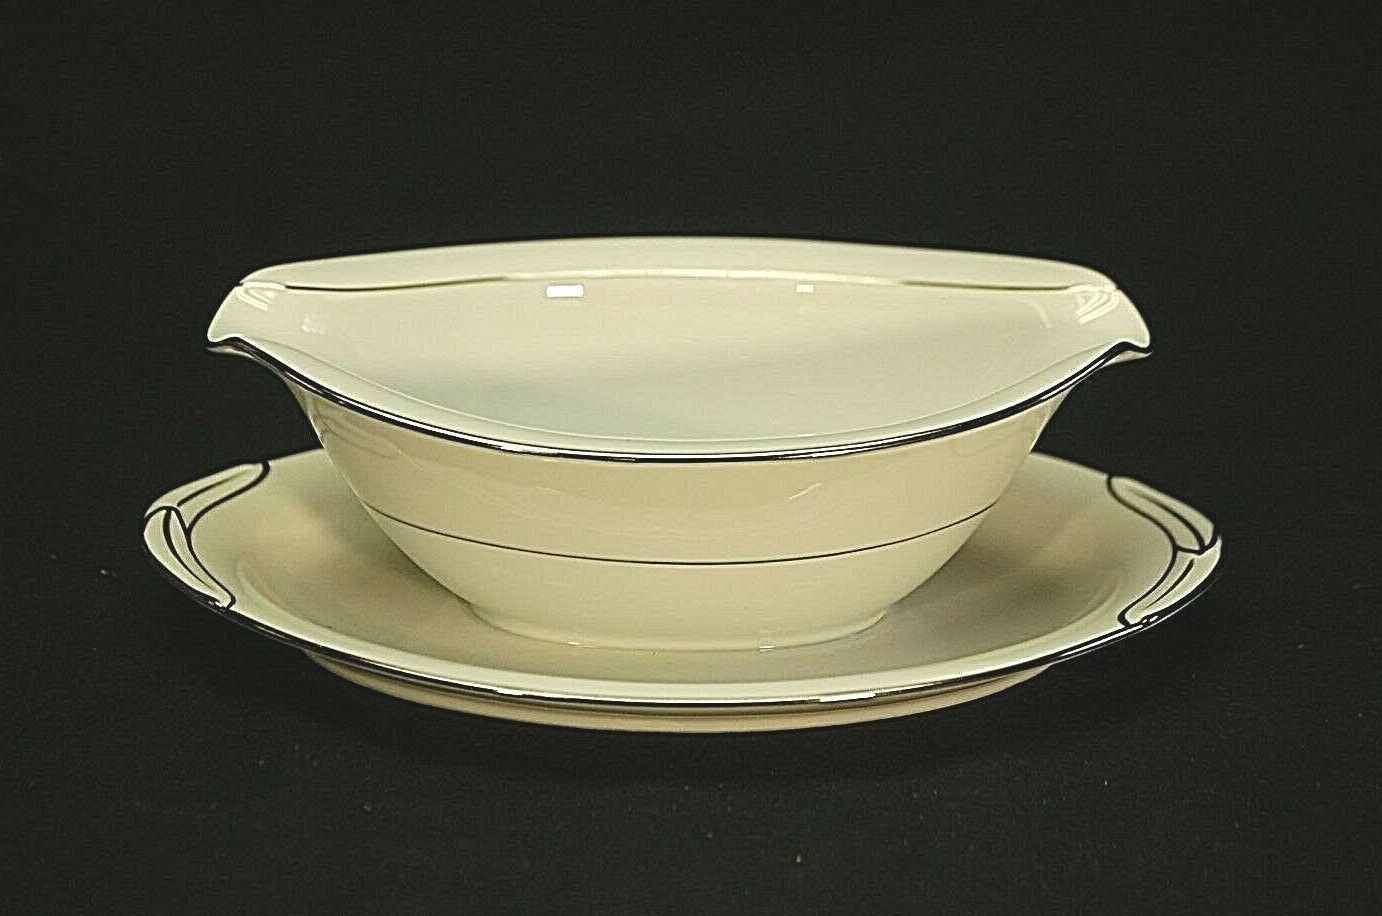 Primary image for Derry by Noritake China 5931 Gravy Boat w Attached Underplate Nippon Toki Kaisha